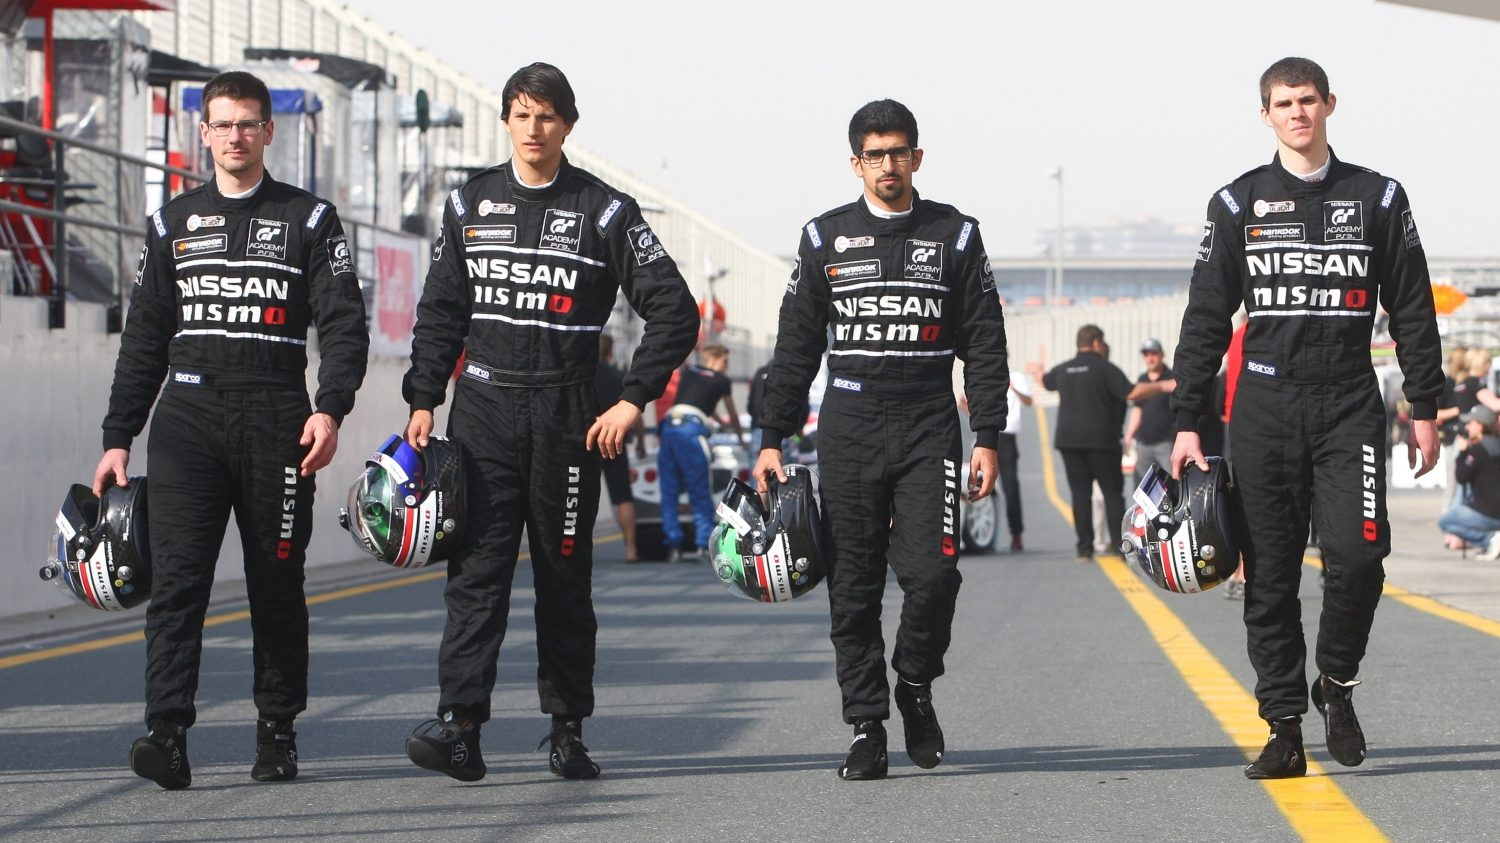 Nissan GT Academy Suited up drivers on the track.